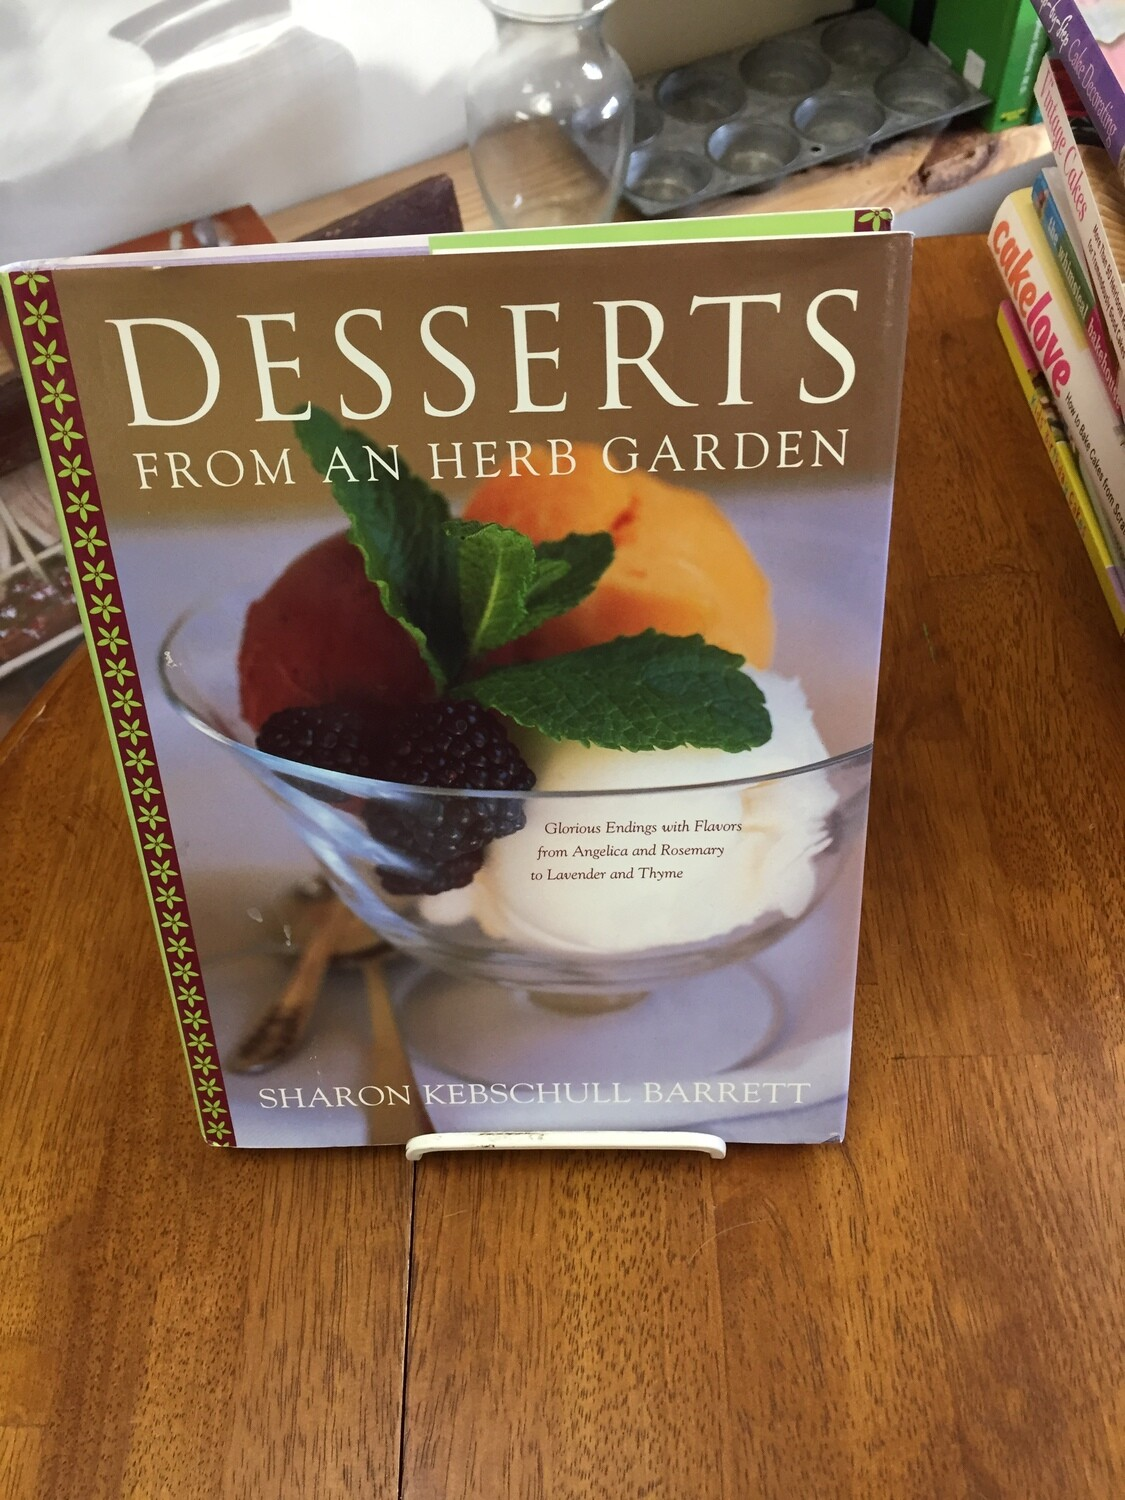 Desserts from an Herb Garden